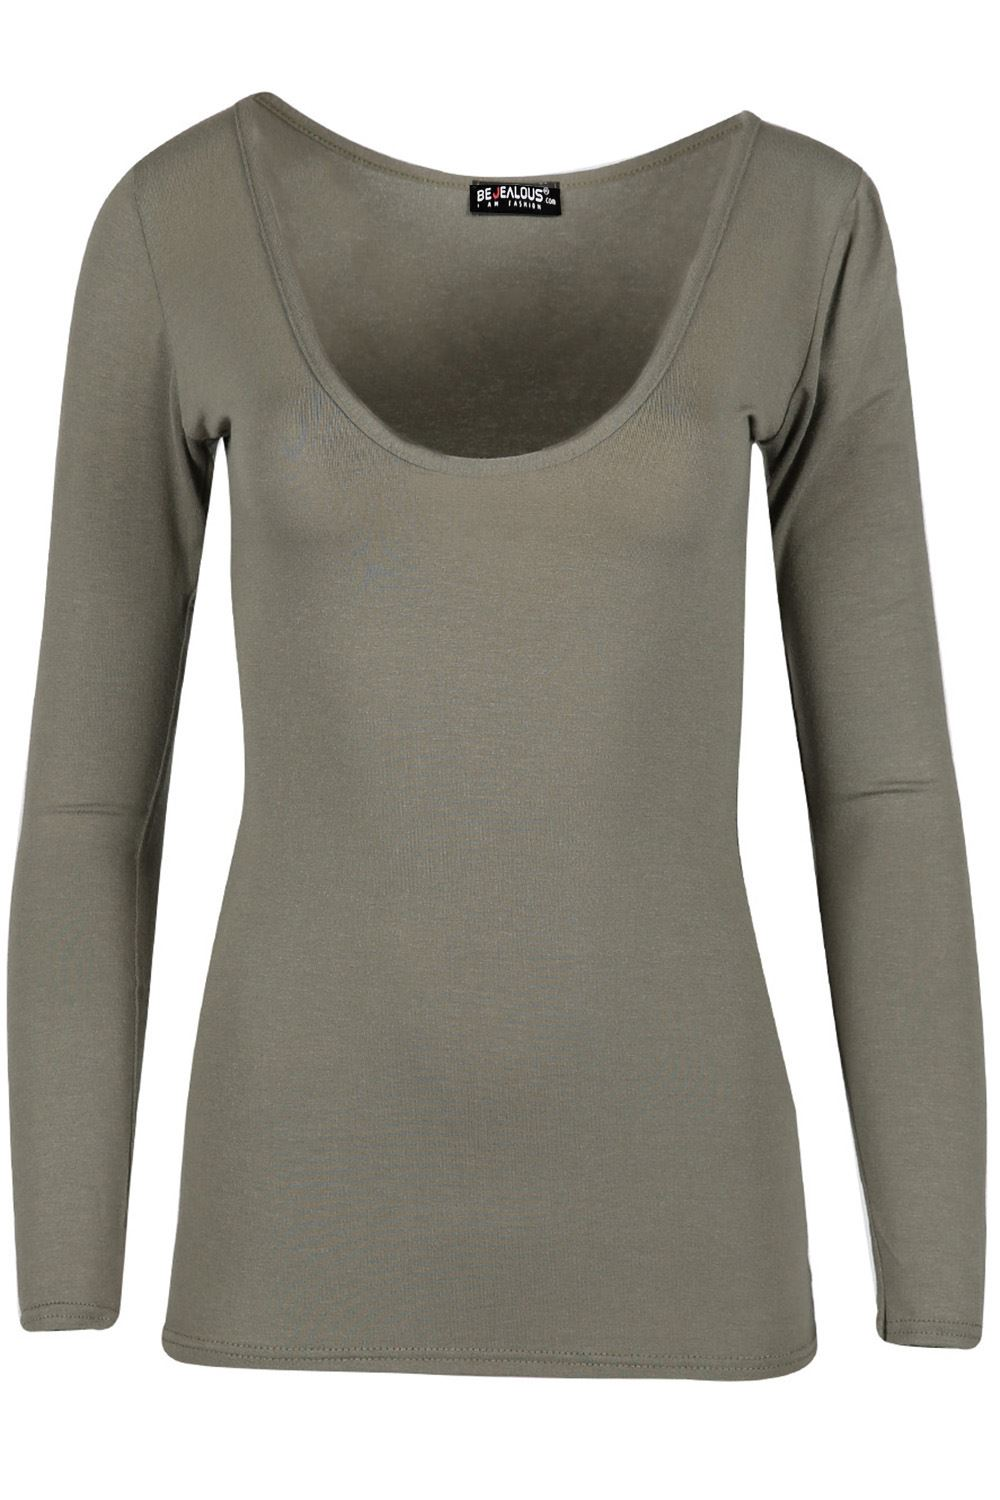 Description: Gildan G Heavy Cotton Long-Sleeve T-Shirt is % preshrunk oz cotton. (Ash Grey is 99% cotton and 1% polyester. Sport Grey is 90% cotton and 10% polyester.) Colors: Ash Grey.